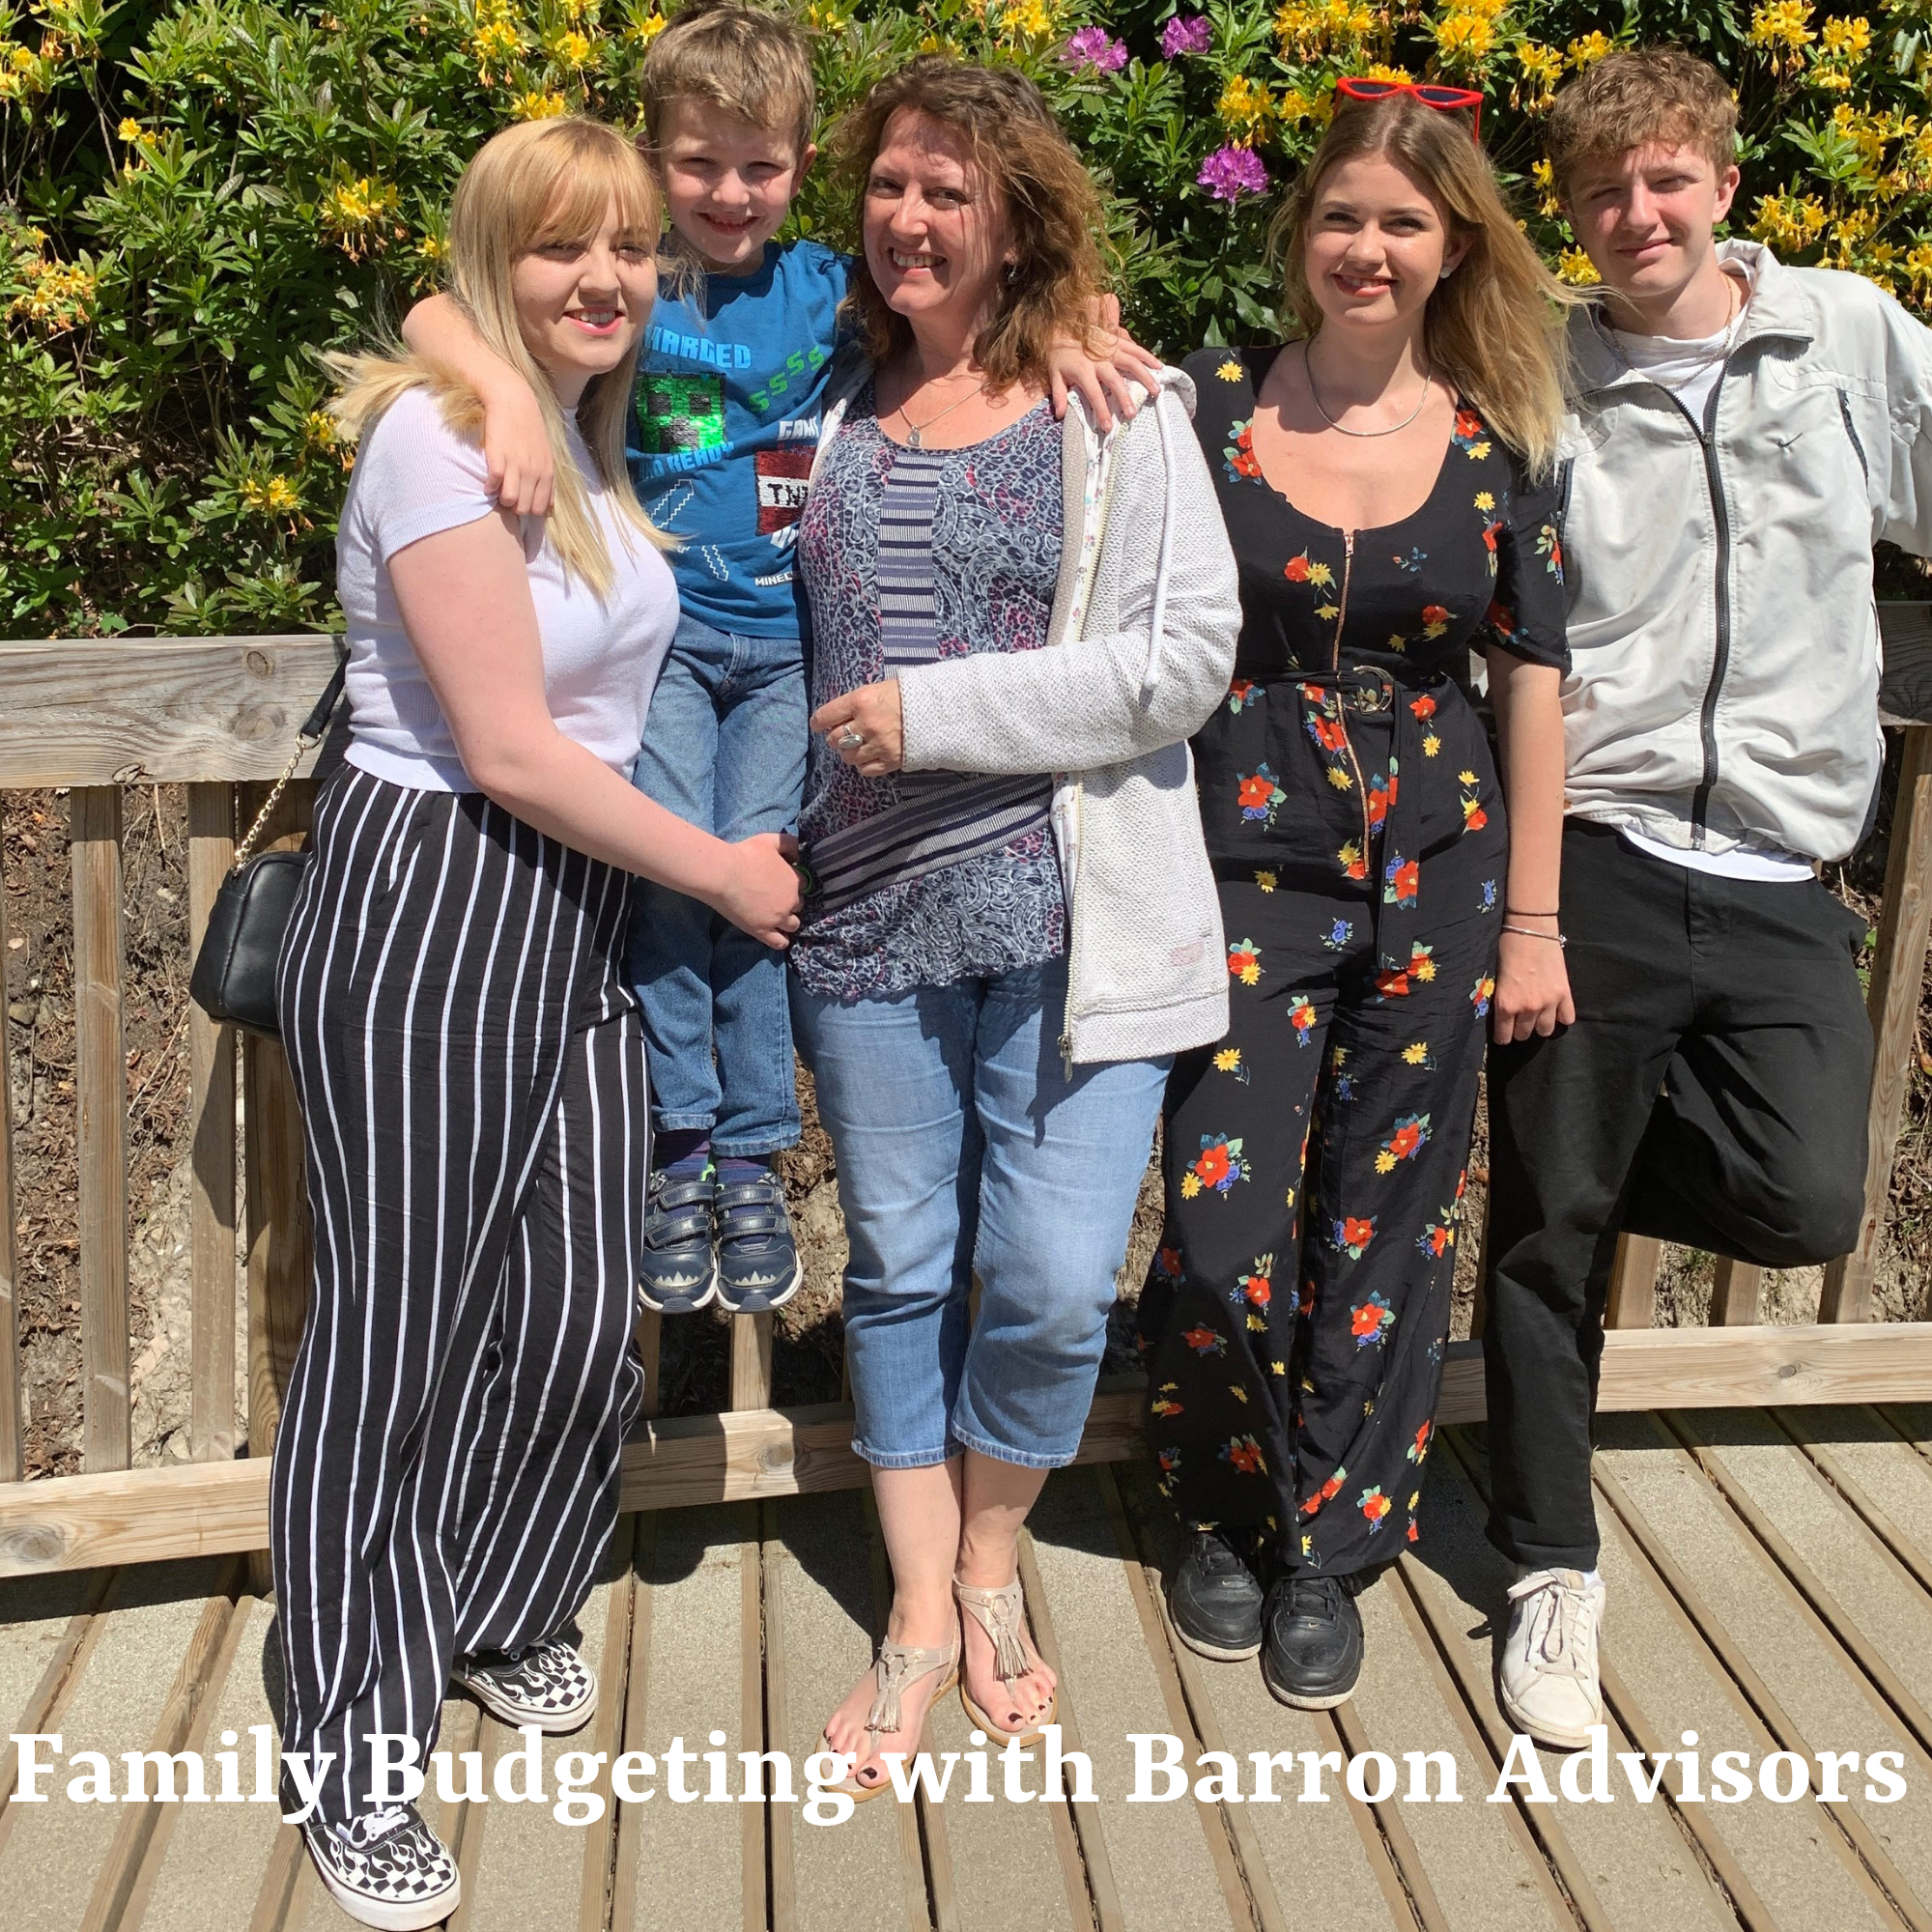 Family Budgeting with Barron Advisors